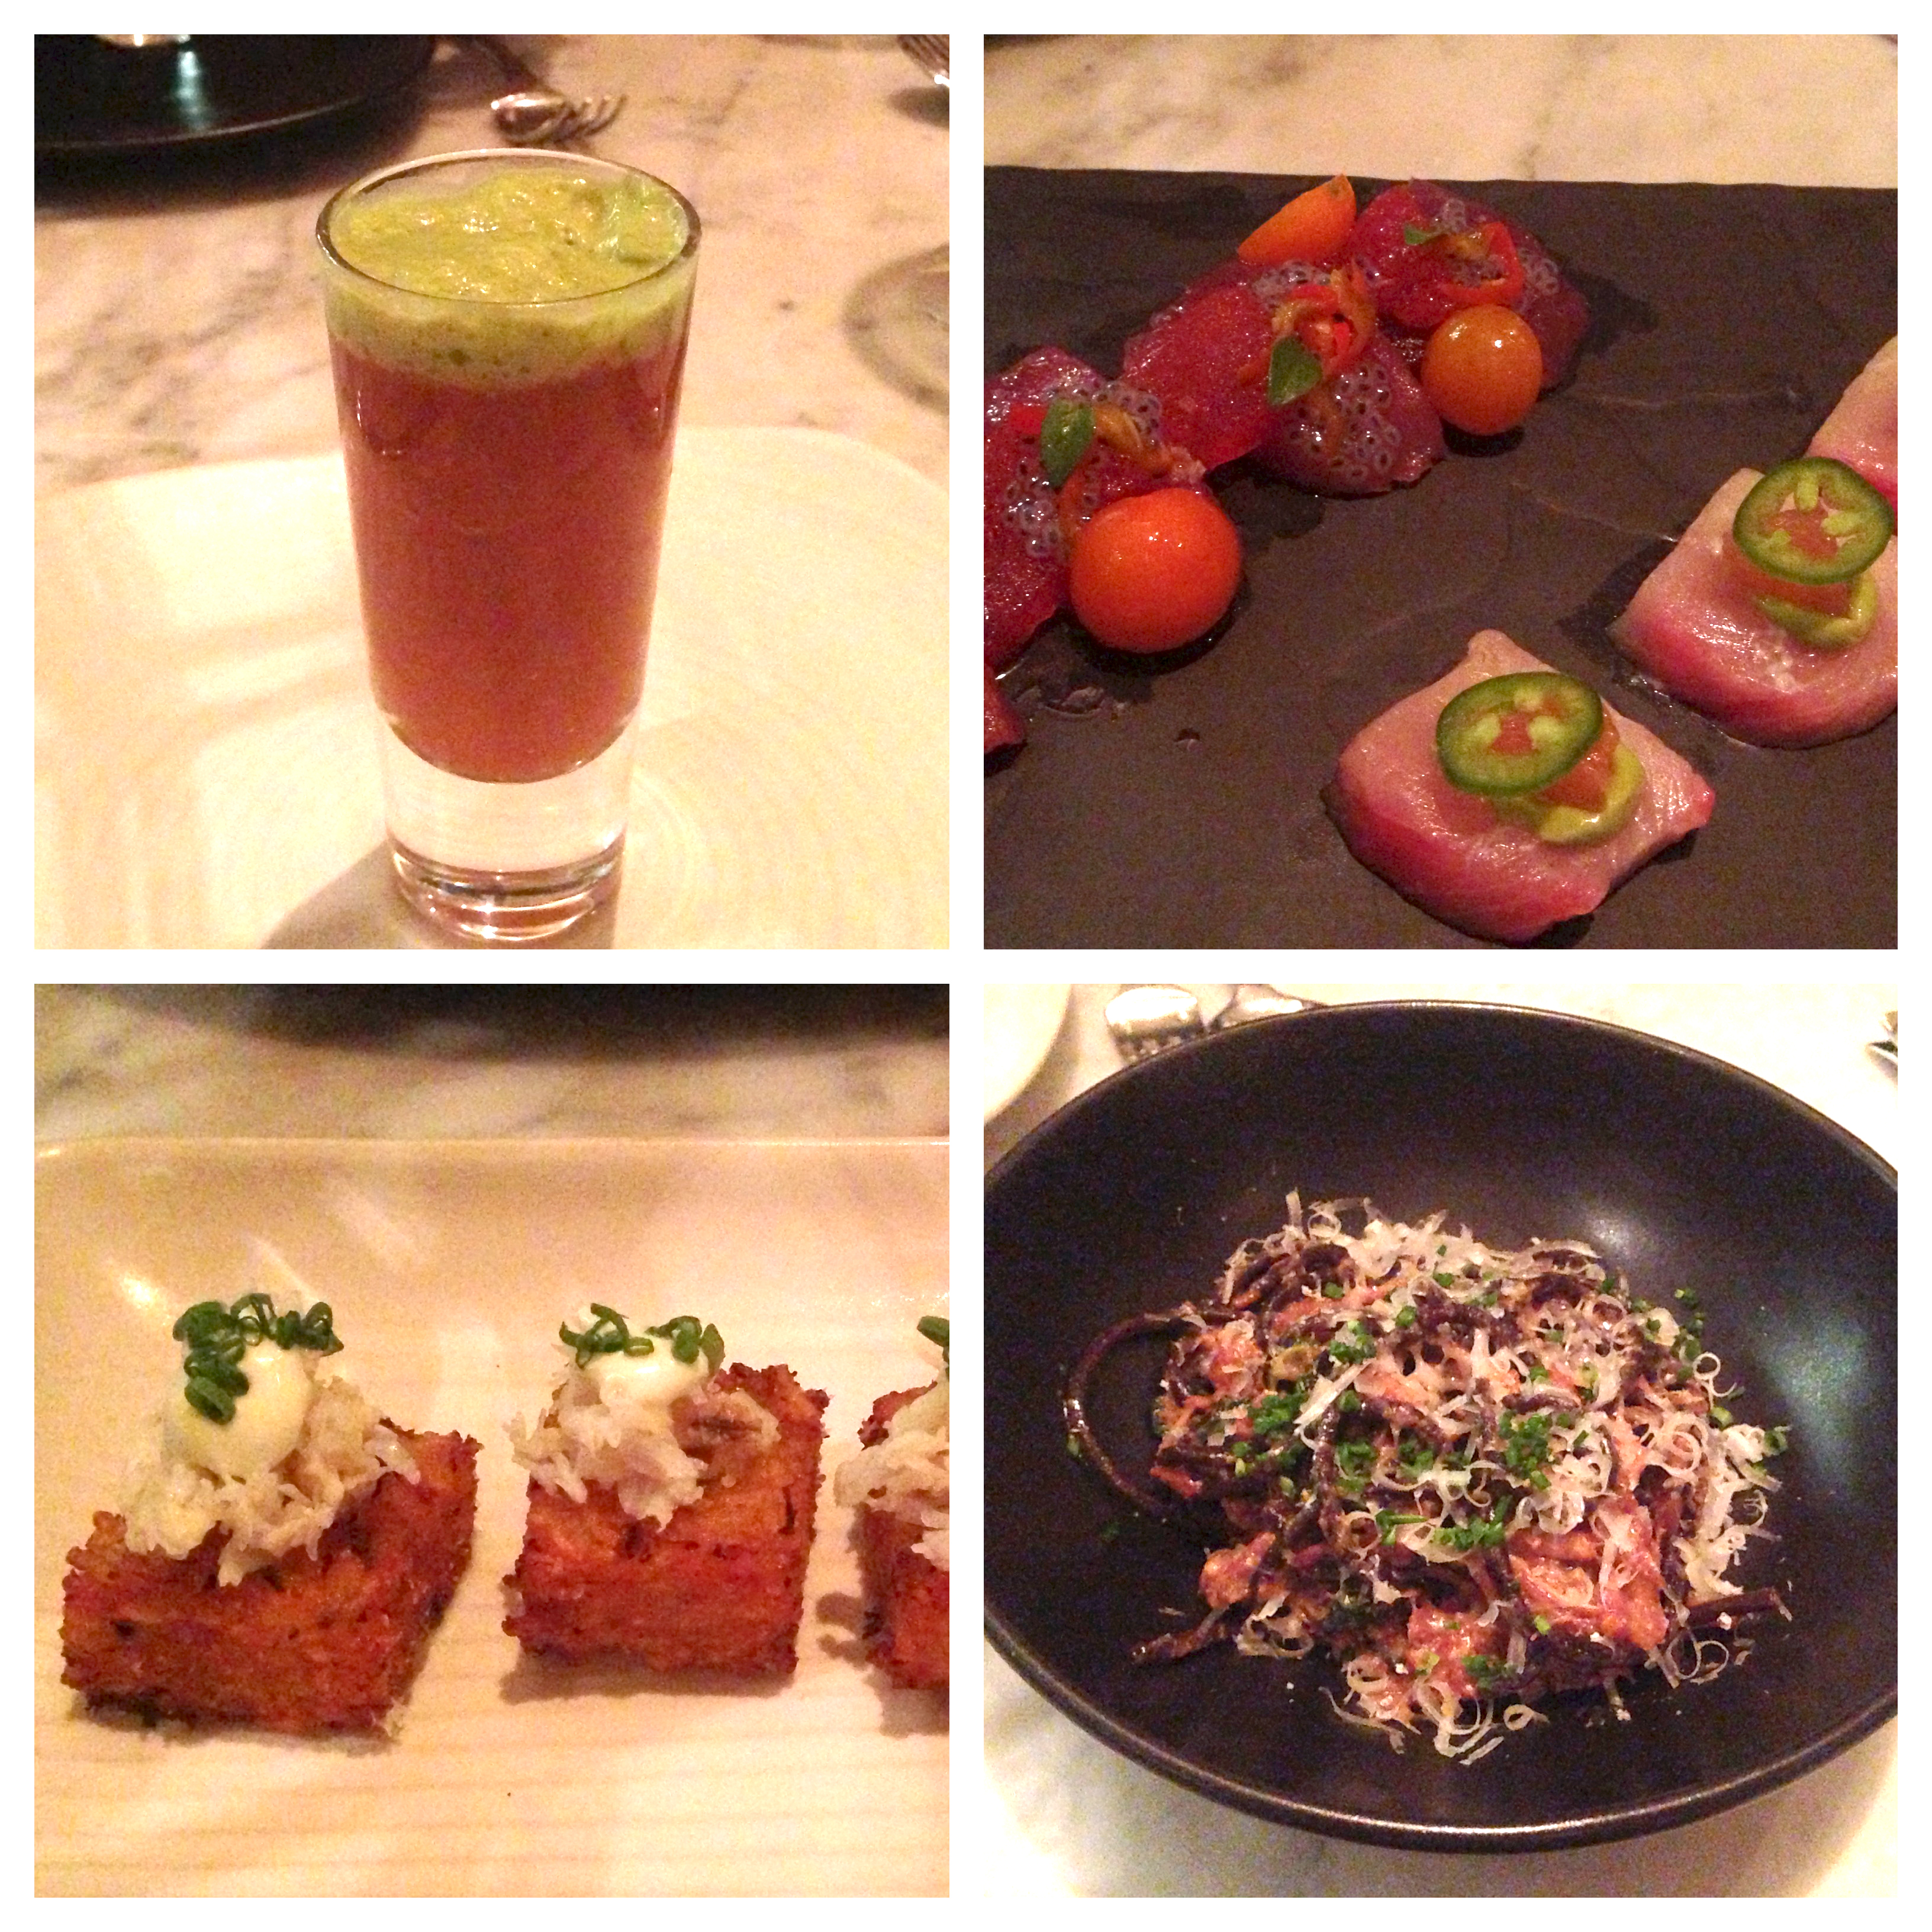 Gazpacho, crudo, crab  tater tots  and pasta with pork at Chalkboard in Healdsburg, CA.